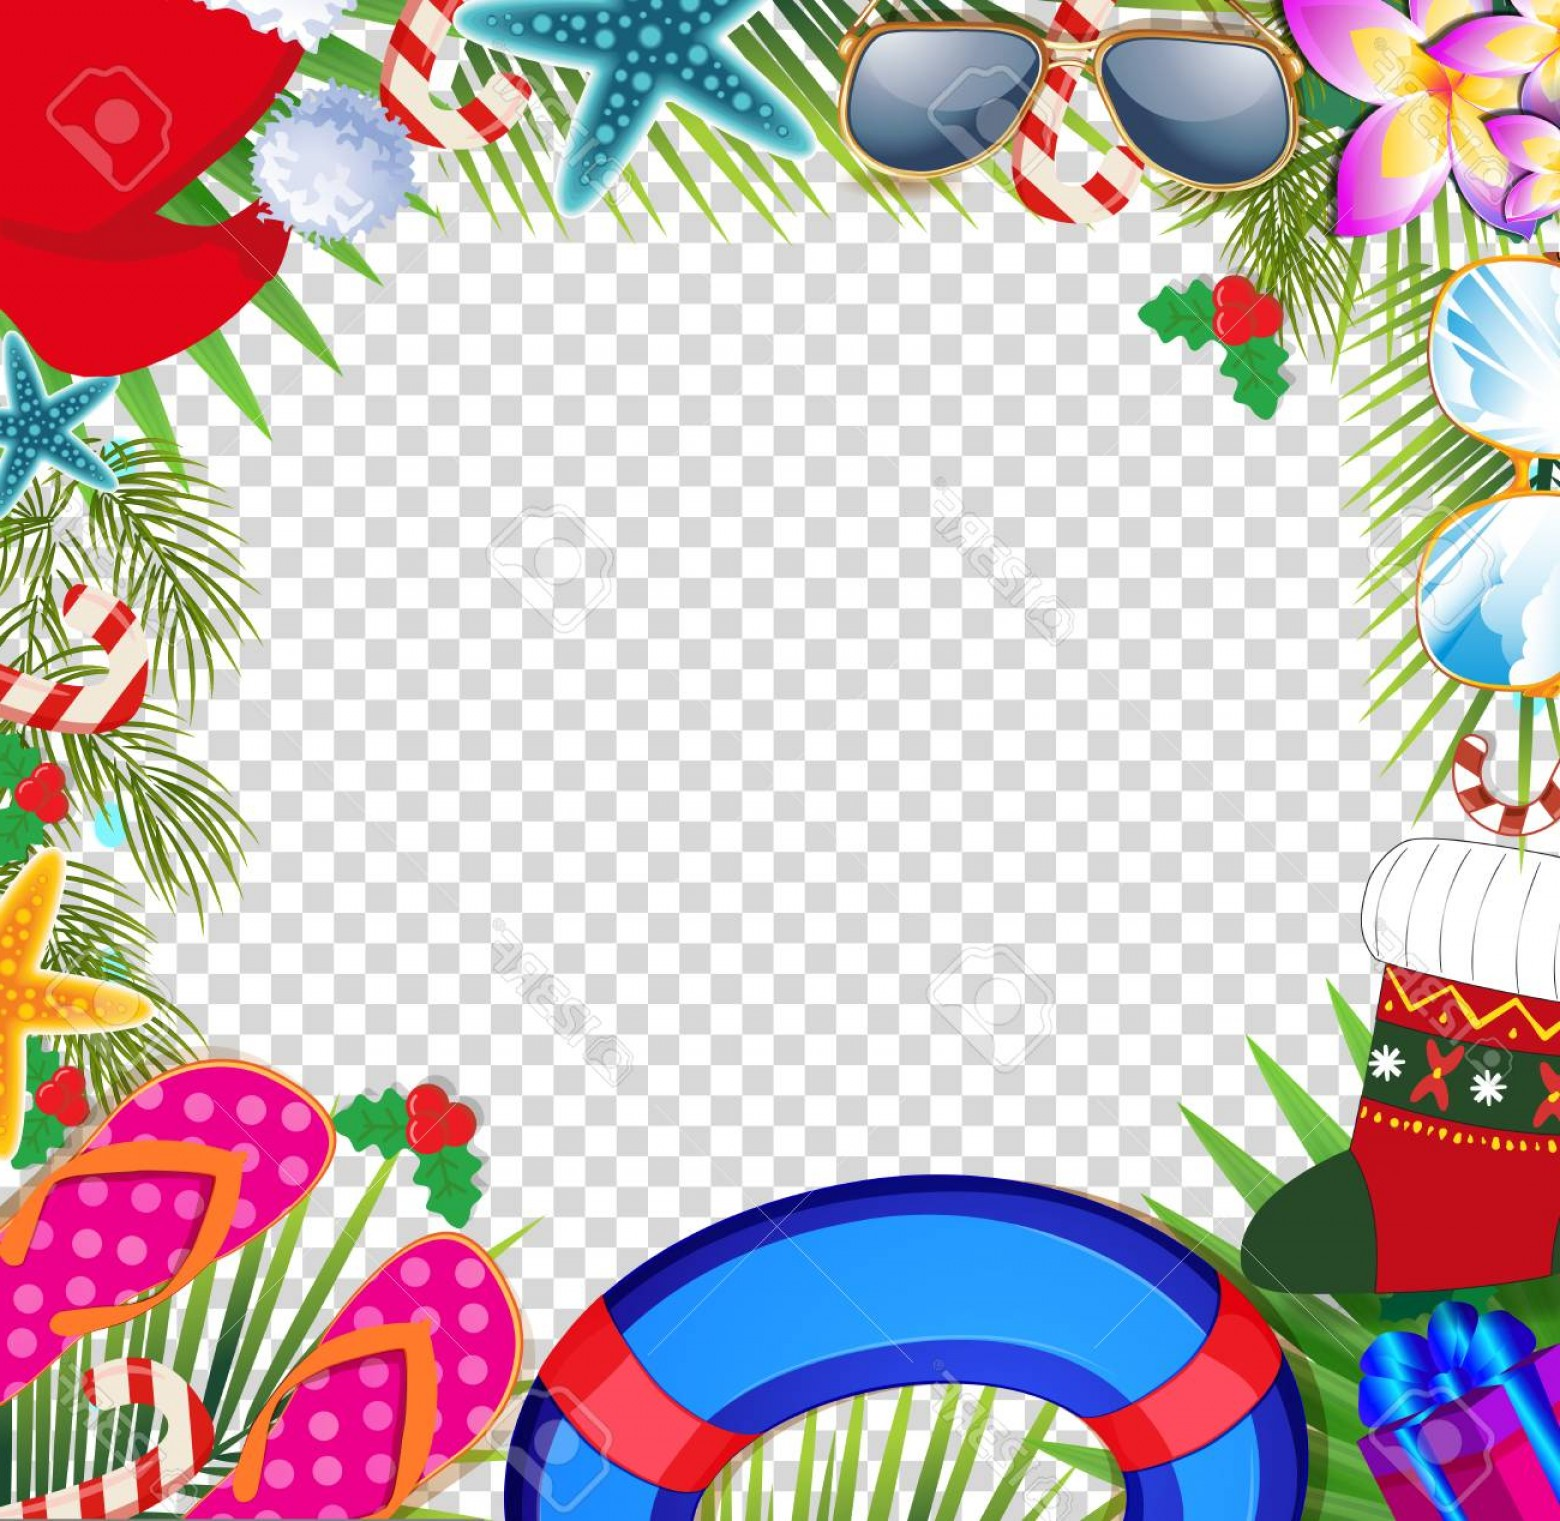 Summer Transparent Vector: Photostock Vector Merry Christmas And Happy New Year Border In A Warm Climate Design Style Summer Vacation Accessories